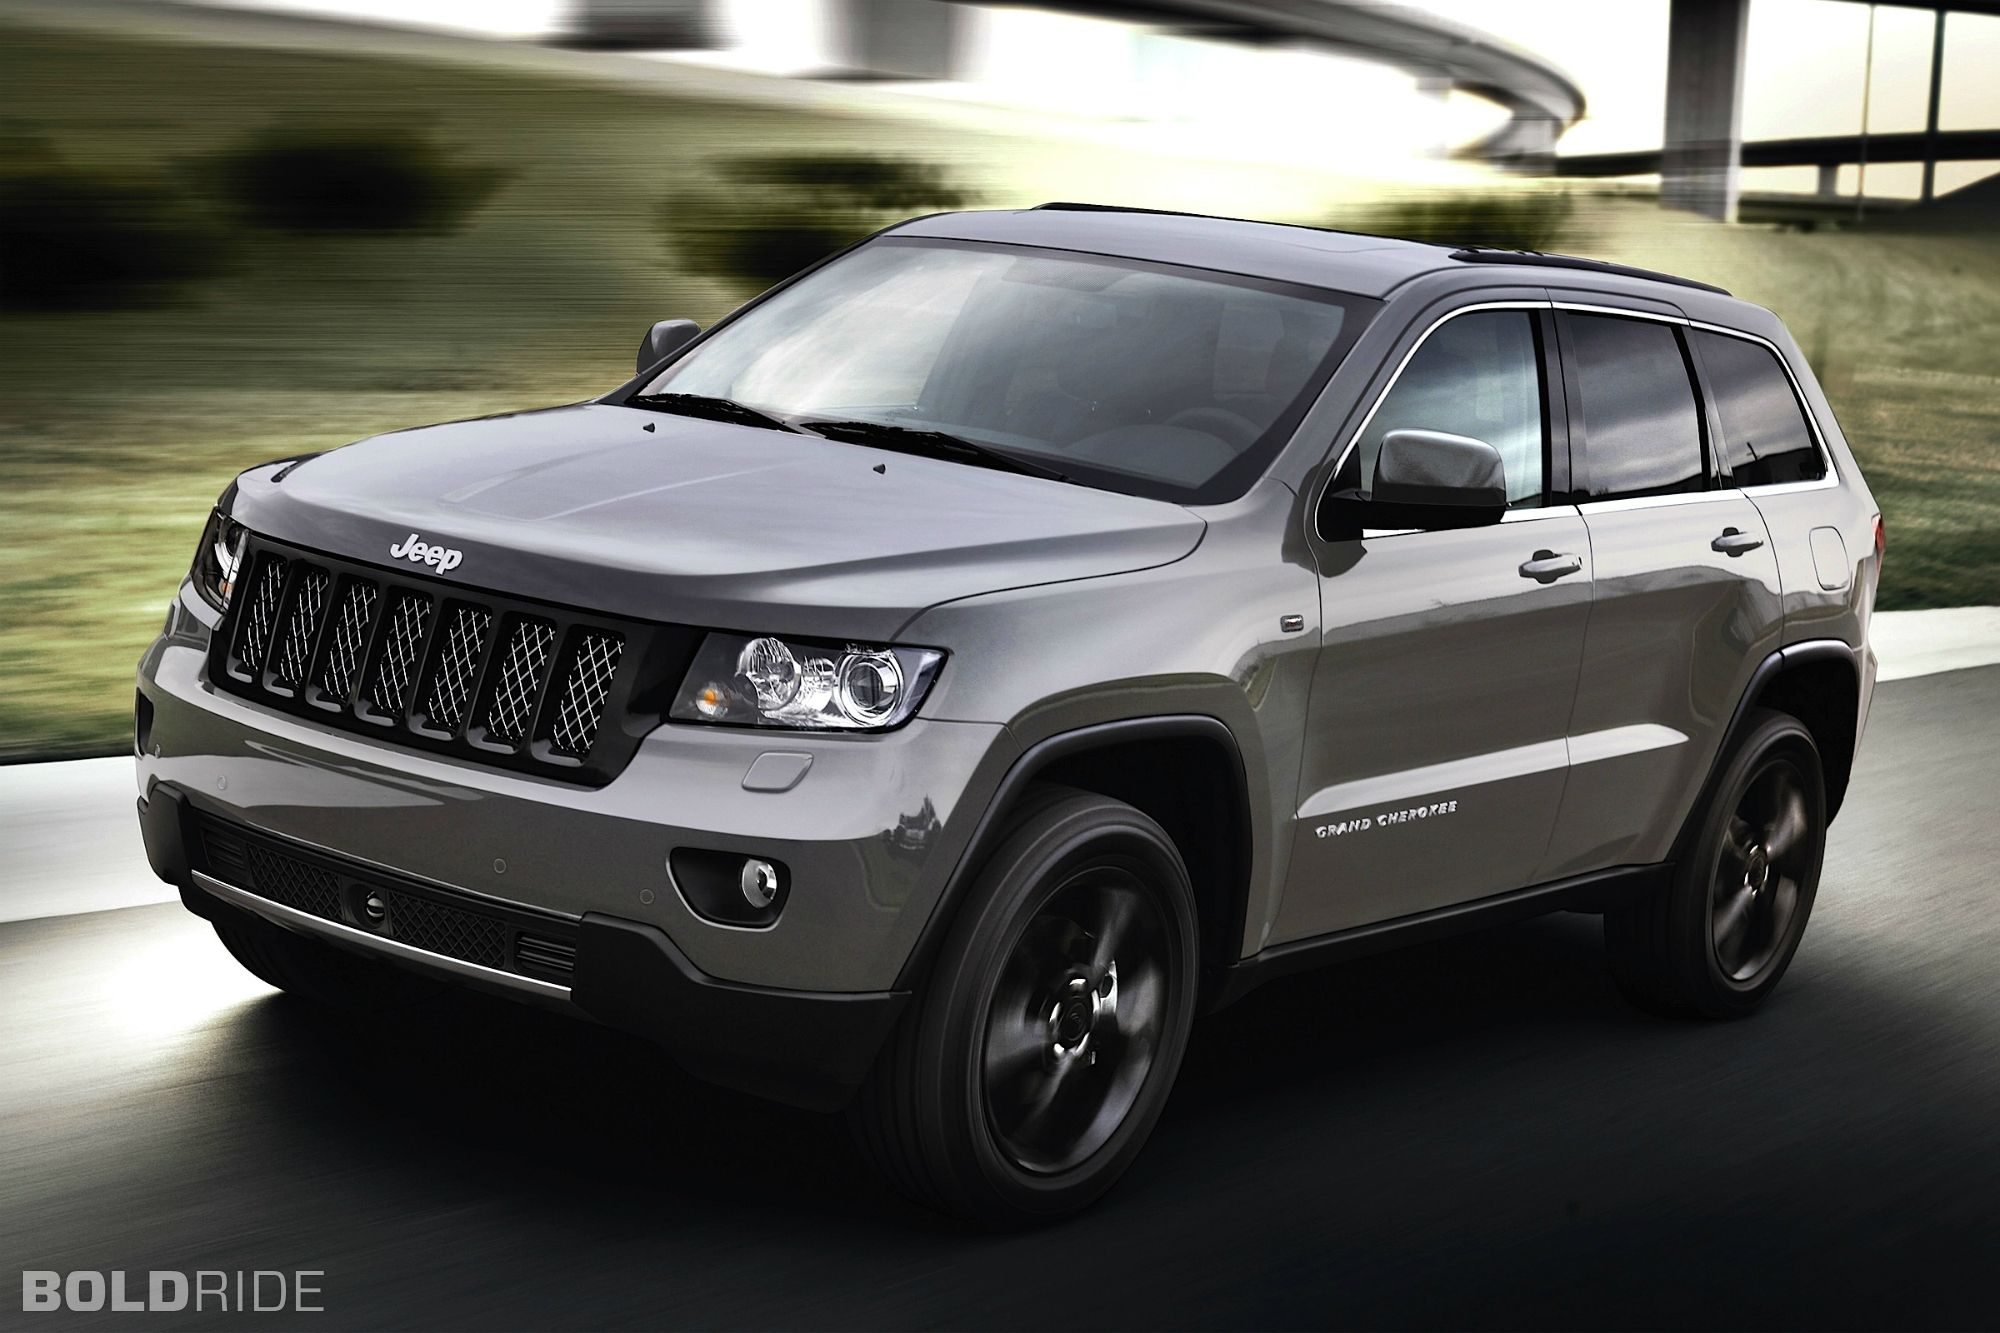 2012 Jeep Grand Cherokee S Limited 画像あり ジープグランド